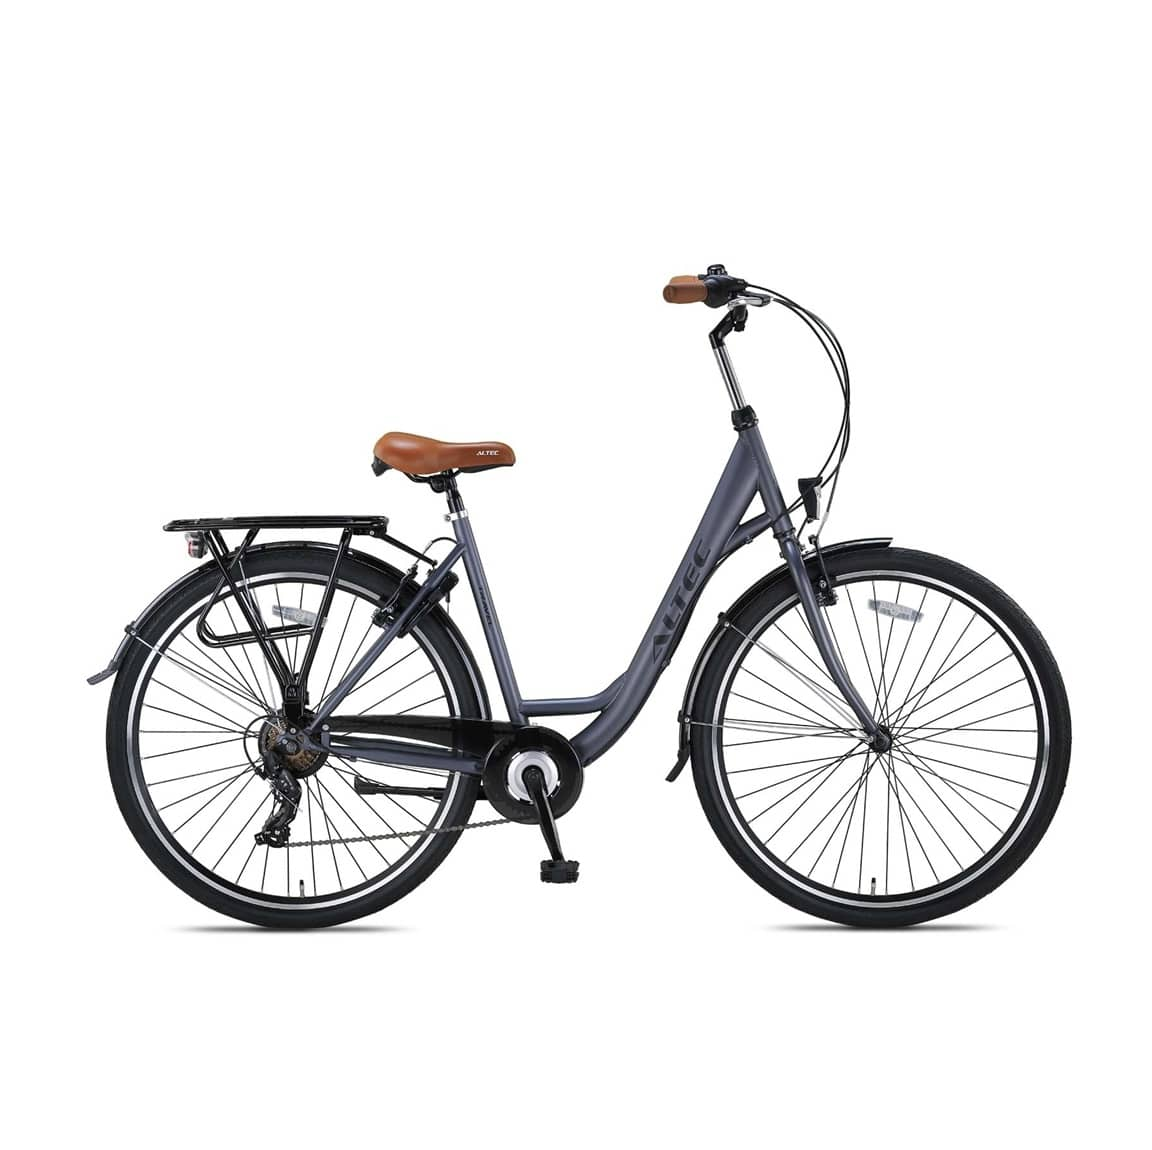 Altec Travel damesfiets 7 speed 28 inch